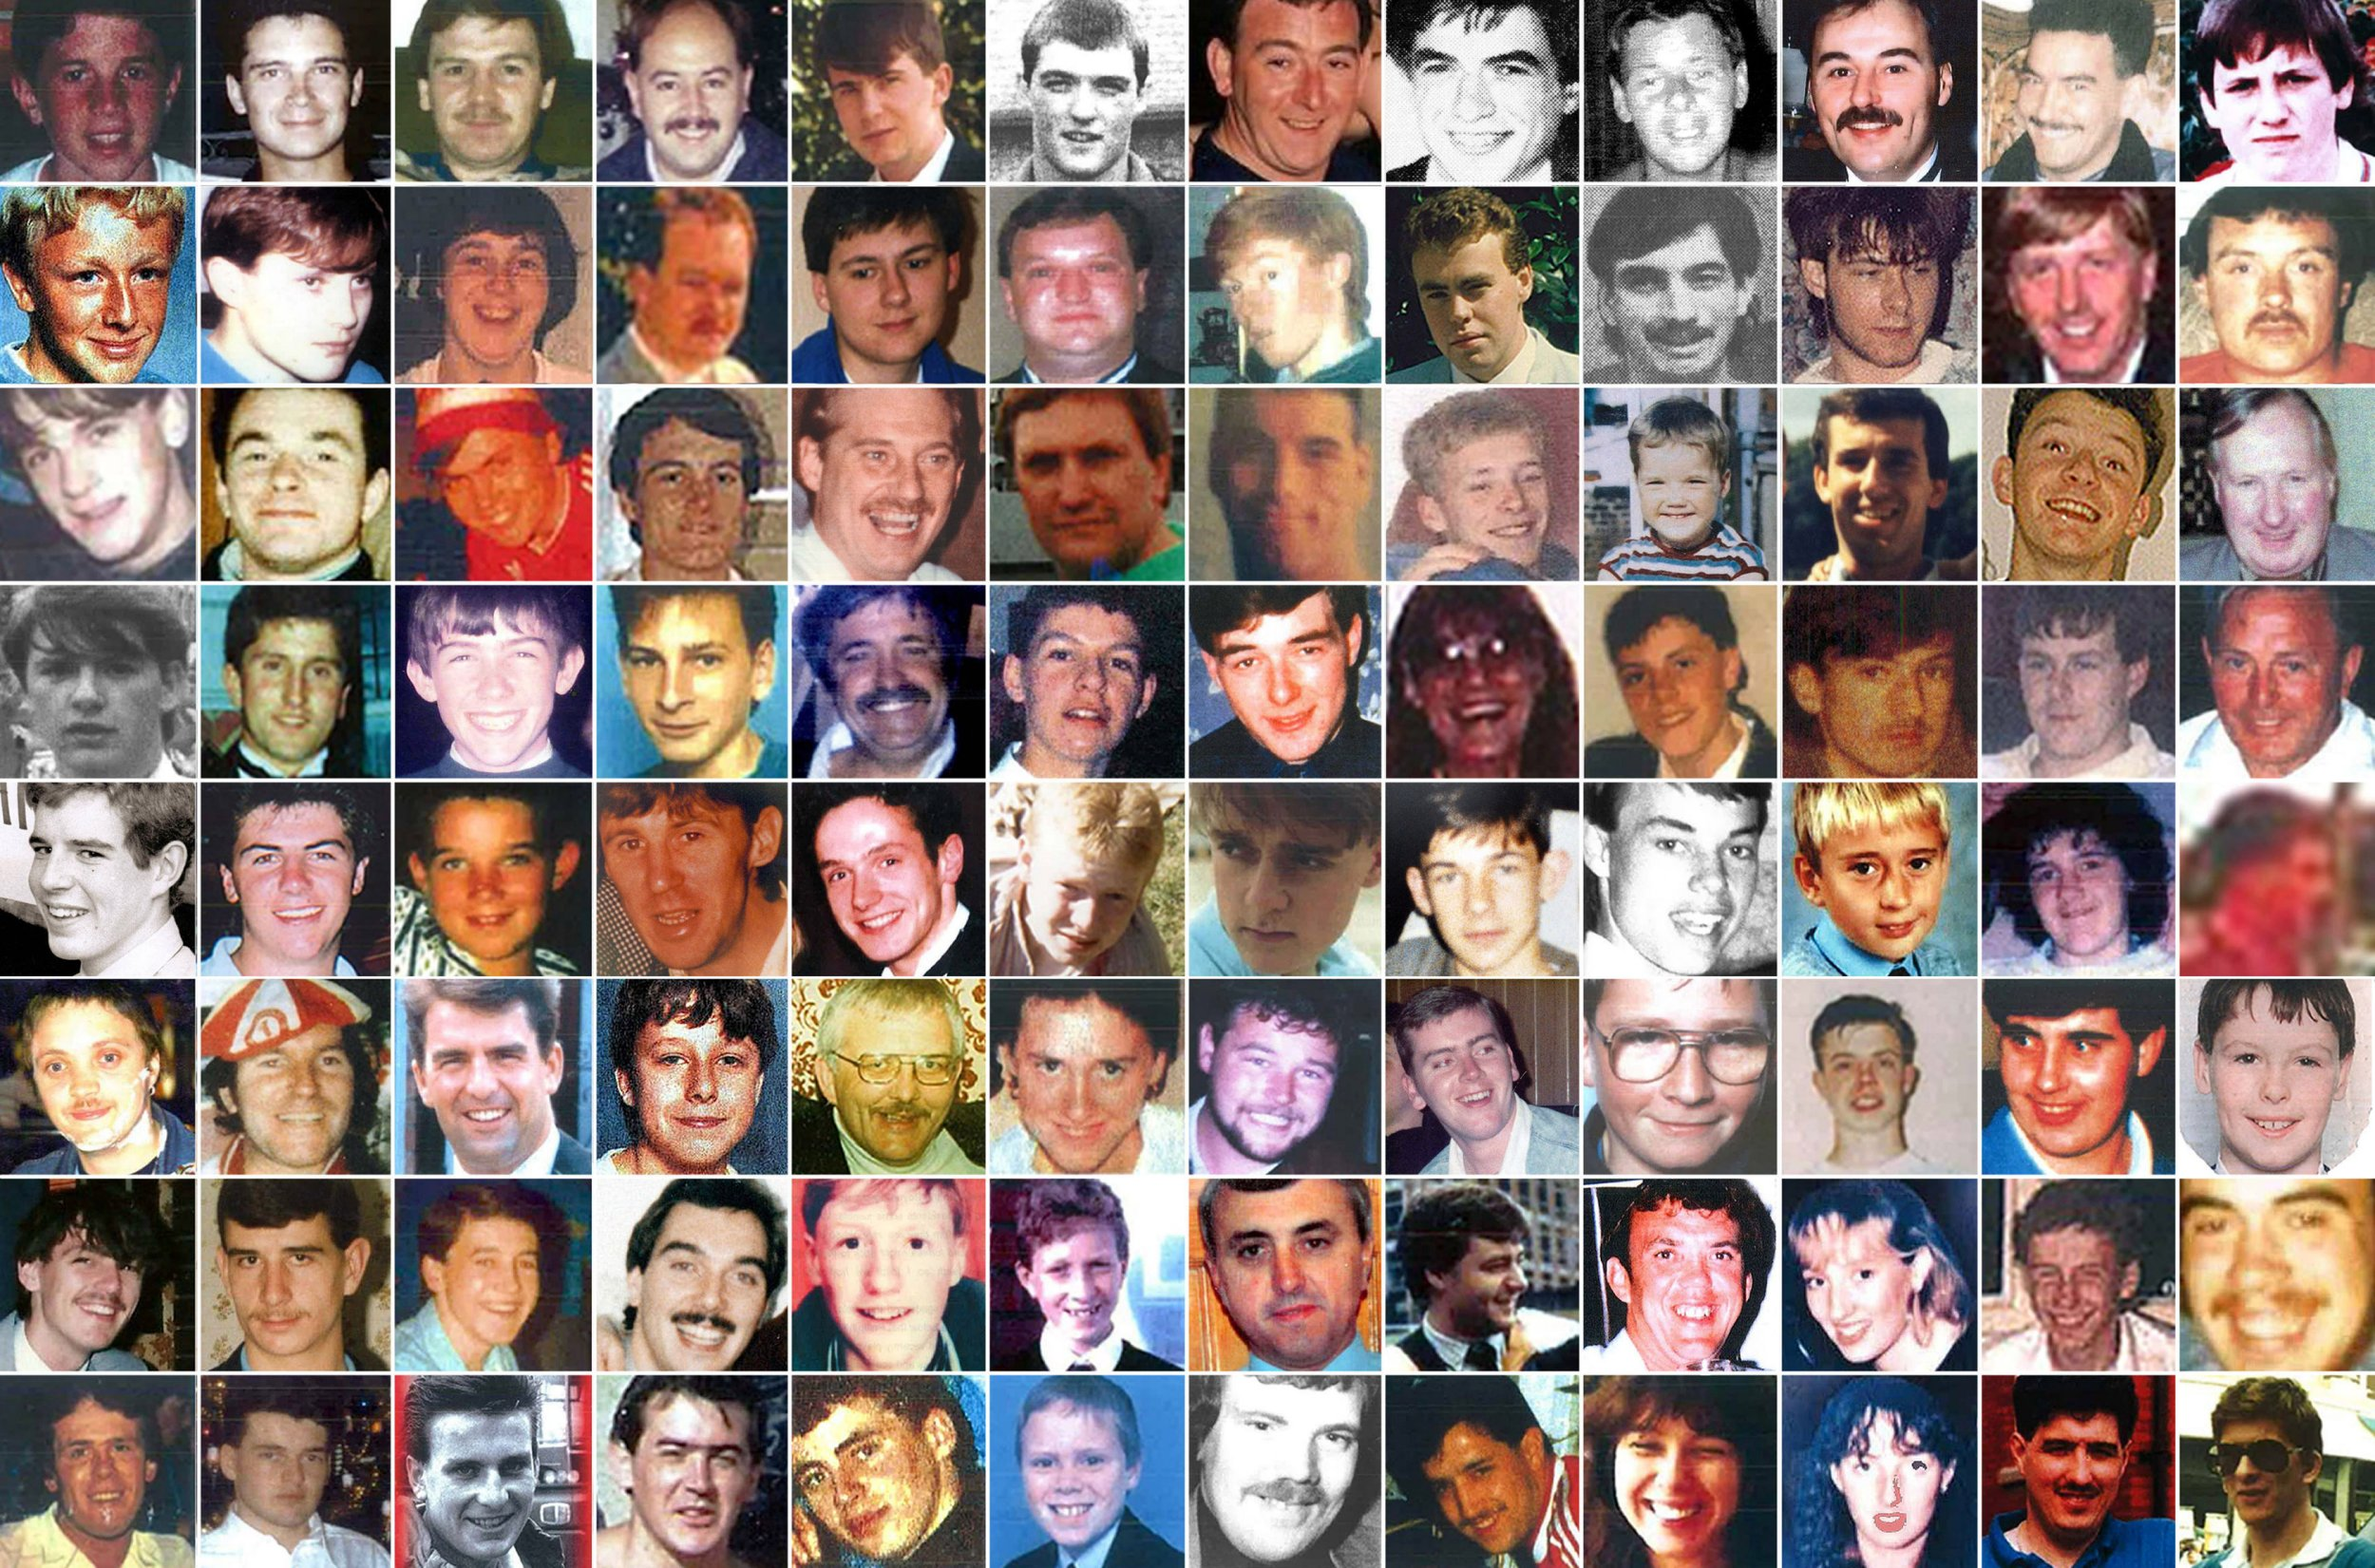 The full list of the victims of the Hillsborough disaster (top row left to right) Adam Edward Spearritt, Alan Johnston, Alan McGlone, Andrew Mark Brookes, Anthony Bland, Anthony Peter Kelly, Arthur Horrocks, Barry Glover, Barry Sidney Bennett, Brian Christopher Mathews, Carl William Rimmer, Carl Brown, (second row left to right) Carl Darren Hewitt, Carl David Lewis, Christine Anne Jones, Christopher James Traynor, Christopher Barry Devonside, Christopher Edwards, Colin Wafer, Colin Andrew Hugh William Sefton, Colin Mark Ashcroft, David William Birtle, David George Rimmer, David Hawley, (third row left to right) David John Benson, David Leonard Thomas, David William Mather, Derrick George Godwin, Eric Hankin, Eric George Hughes, Francis Joseph McAllister, Gary Christopher Church, Gary Collins, Gary Harrison, Gary Philip Jones, Gerard Bernard Patrick Baron, (fourth row left to right) Gordon Rodney Horn, Graham John Roberts, Graham John Wright, Henry Charles Rogers, Henry Thomas Burke, Ian David Whelan, Ian Thomas Glover, Inger Shah, James Gary Aspinall, James Philip Delaney, James Robert Hennessy, John Alfred Anderson, (fifth row left to right) John McBrien, Jonathon Owens, Jon-Paul Gilhooley, Joseph Clark, Joseph Daniel McCarthy, Keith McGrath, Kester Roger Marcus Ball, Kevin Daniel Williams, Kevin Tyrrell, Lee Nicol, Marian Hazel McCabe, Martin Kevin Traynor, (sixth row left to right) Martin Kenneth Wild, Michael David Kelly, Nicholas Peter Joynes, Nicholas Michael Hewitt, Patrick John Thompson, Paula Ann Smith, Paul Anthony Hewitson, Paul David Brady, Paul Brian Murray, Paul Clark, Paul William Carlile, Peter Andrew Harrison, (seventh row left to right) Peter Andrew Burkett, Peter Francis Tootle, Peter McDonnell, Peter Reuben Thompson, Philip Hammond, Philip John Steele, Raymond Thomas Chapman, Richard Jones, Roy Harry Hamilton, Sarah Louise Hicks, Simon Bell, Stephen Paul Copoc, (bottom row left to right) Stephen Francis Harrison, Stephen Francis O'Neill, Steven Joseph Robinson, David Steven Brown, Stuart Paul William Thompson, Thomas Anthony Howard, Thomas Howard , Thomas Steven Fox, Tracey Elizabeth Cox, Victoria Jane Hicks, Vincent Michael Fitzsimmons and William Roy Pemberton. The jury's conclusions on the fresh Hillsborough inquests will be delivered on Tuesday. PRESS ASSOCIATION Photo. Issue date: Tuesday April 26, 2016. See PA story INQUEST Hillsborough Victims. Photo credit should read: Hillsborough Inquests/PA Wire NOTE TO EDITORS: This handout photo may only be used in for editorial reporting purposes for the contemporaneous illustration of events, things or the people in the image or facts mentioned in the caption. Reuse of the picture may require further permission from the copyright holder.